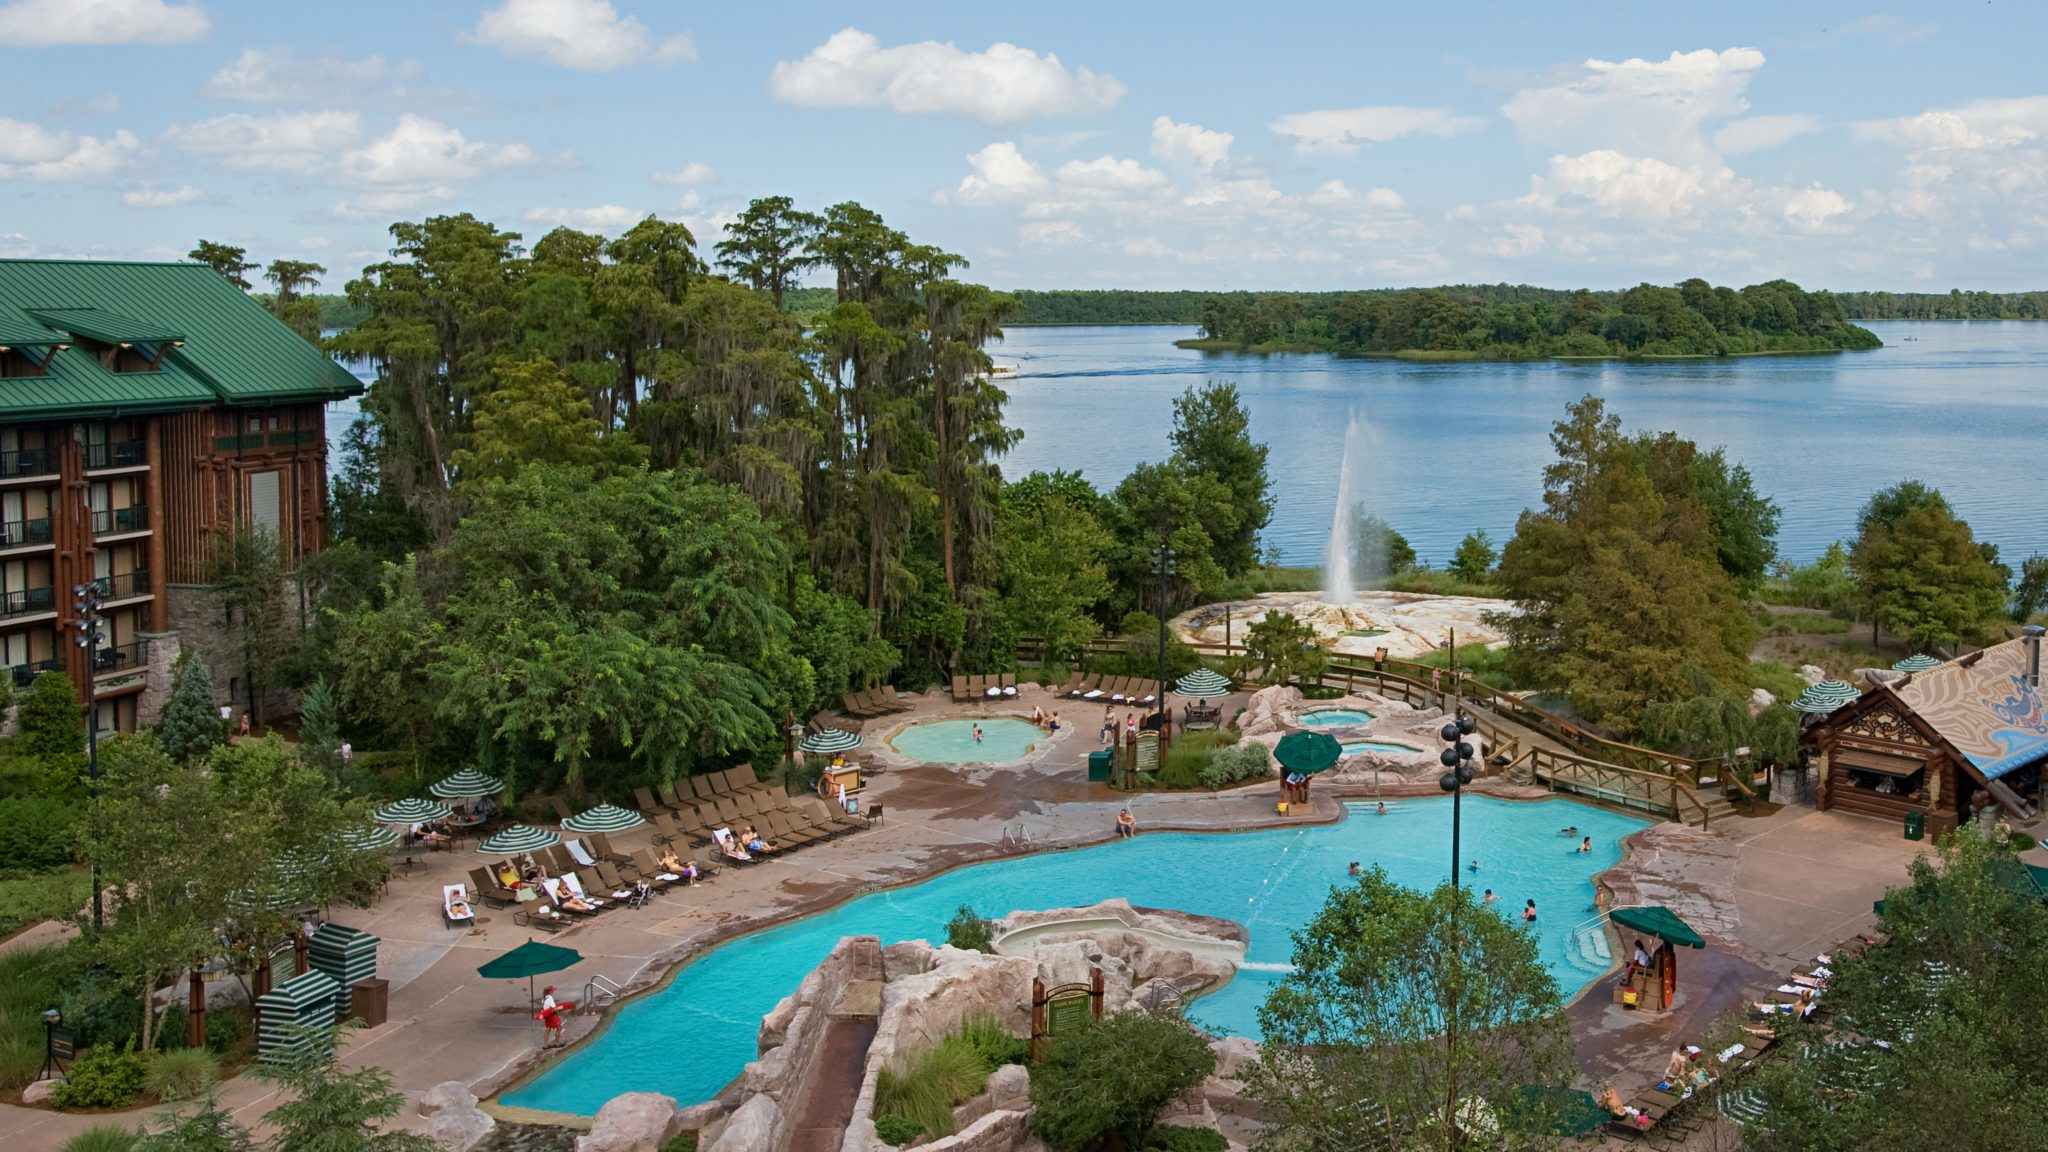 Inspired by turn-of-the-century national park lodges, Disney's Wilderness Lodge combines rustic charm with a contemporary flair on the shore of Bay Lake at Walt Disney World Resort. The 727-room hideaway features a spectacular six-story lobby, replete with teepee-topped chandeliers, totem poles, an 82-foot-tall stone fireplace and a bubbling hot spring that expands outside the building into a roaring waterfall. Walt Disney World Resort is located in Lake Buena Vista, Fla. (Disney)